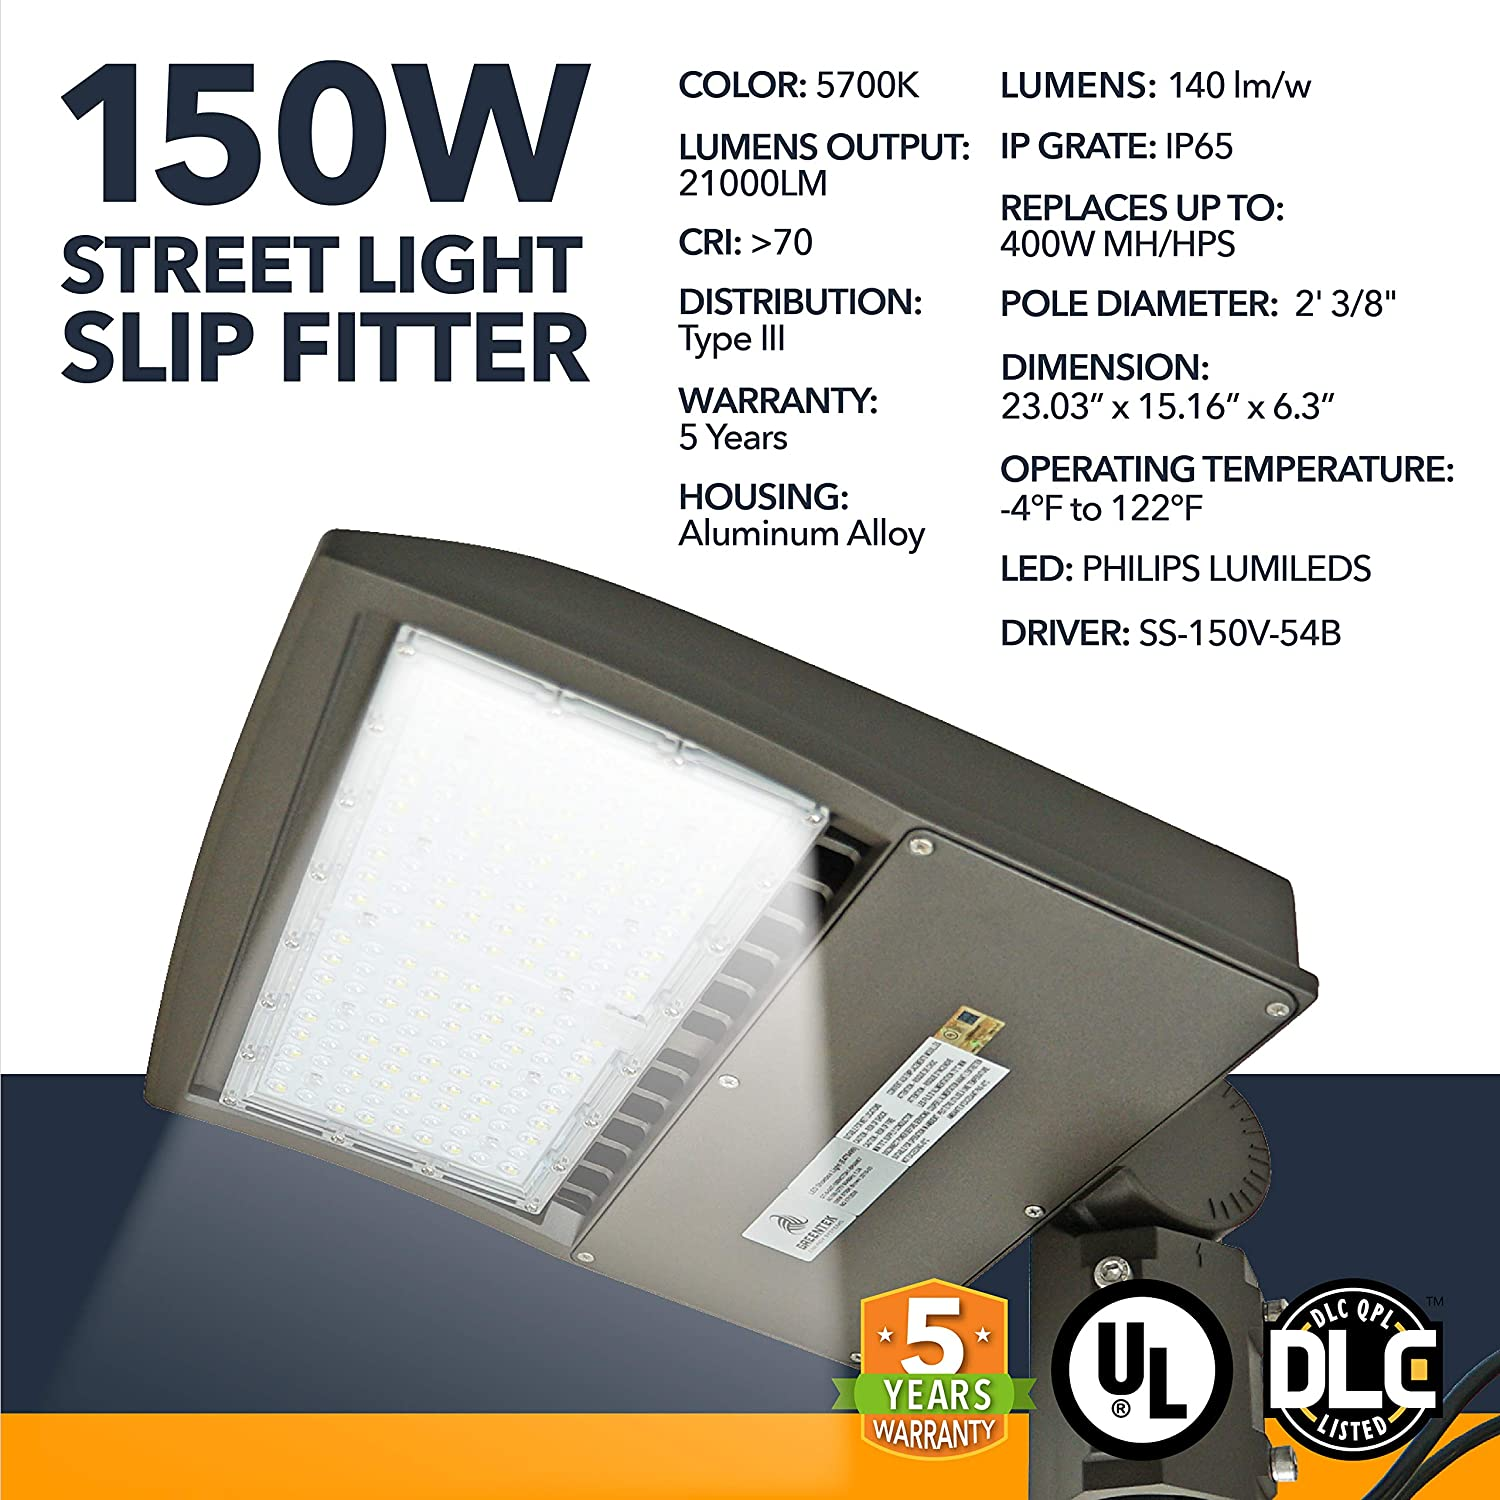 LED DLC Street Lighting - 150W - Outdoor LED Street Lights, 21000 Lumens - Commercial or Residential Area Pathway Security Lights - 5 Year Warranty - 5700K